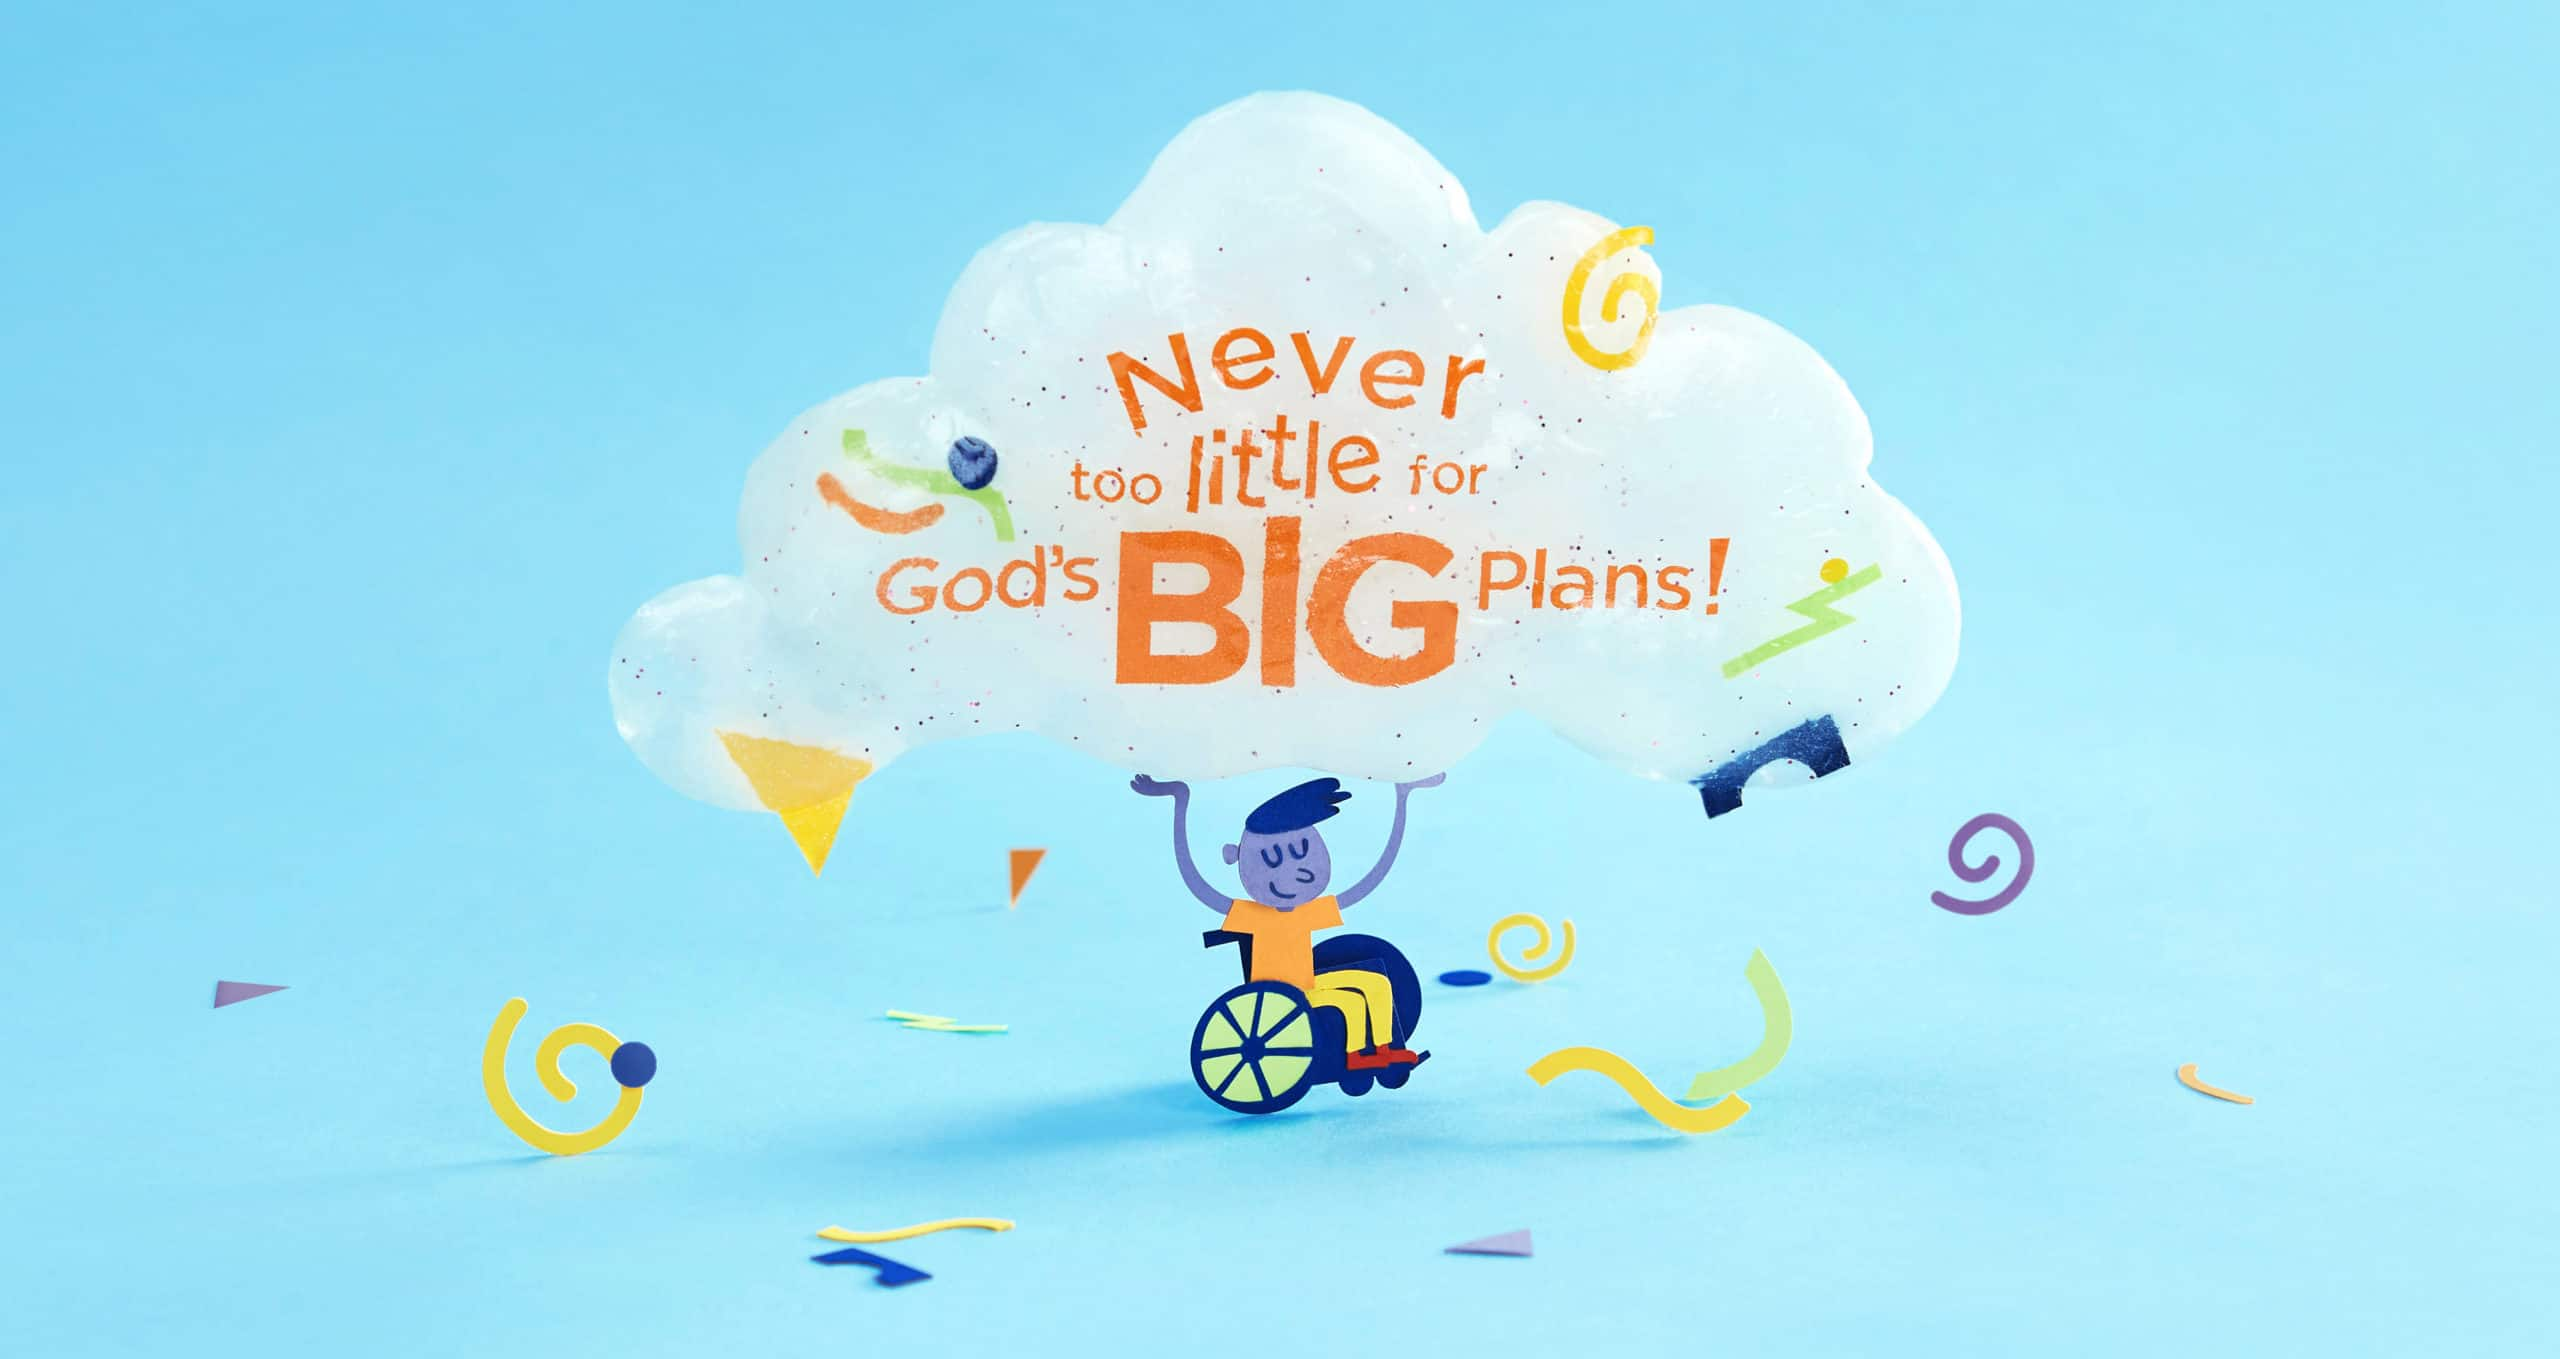 NeverTooLittleForGodsBigPlan